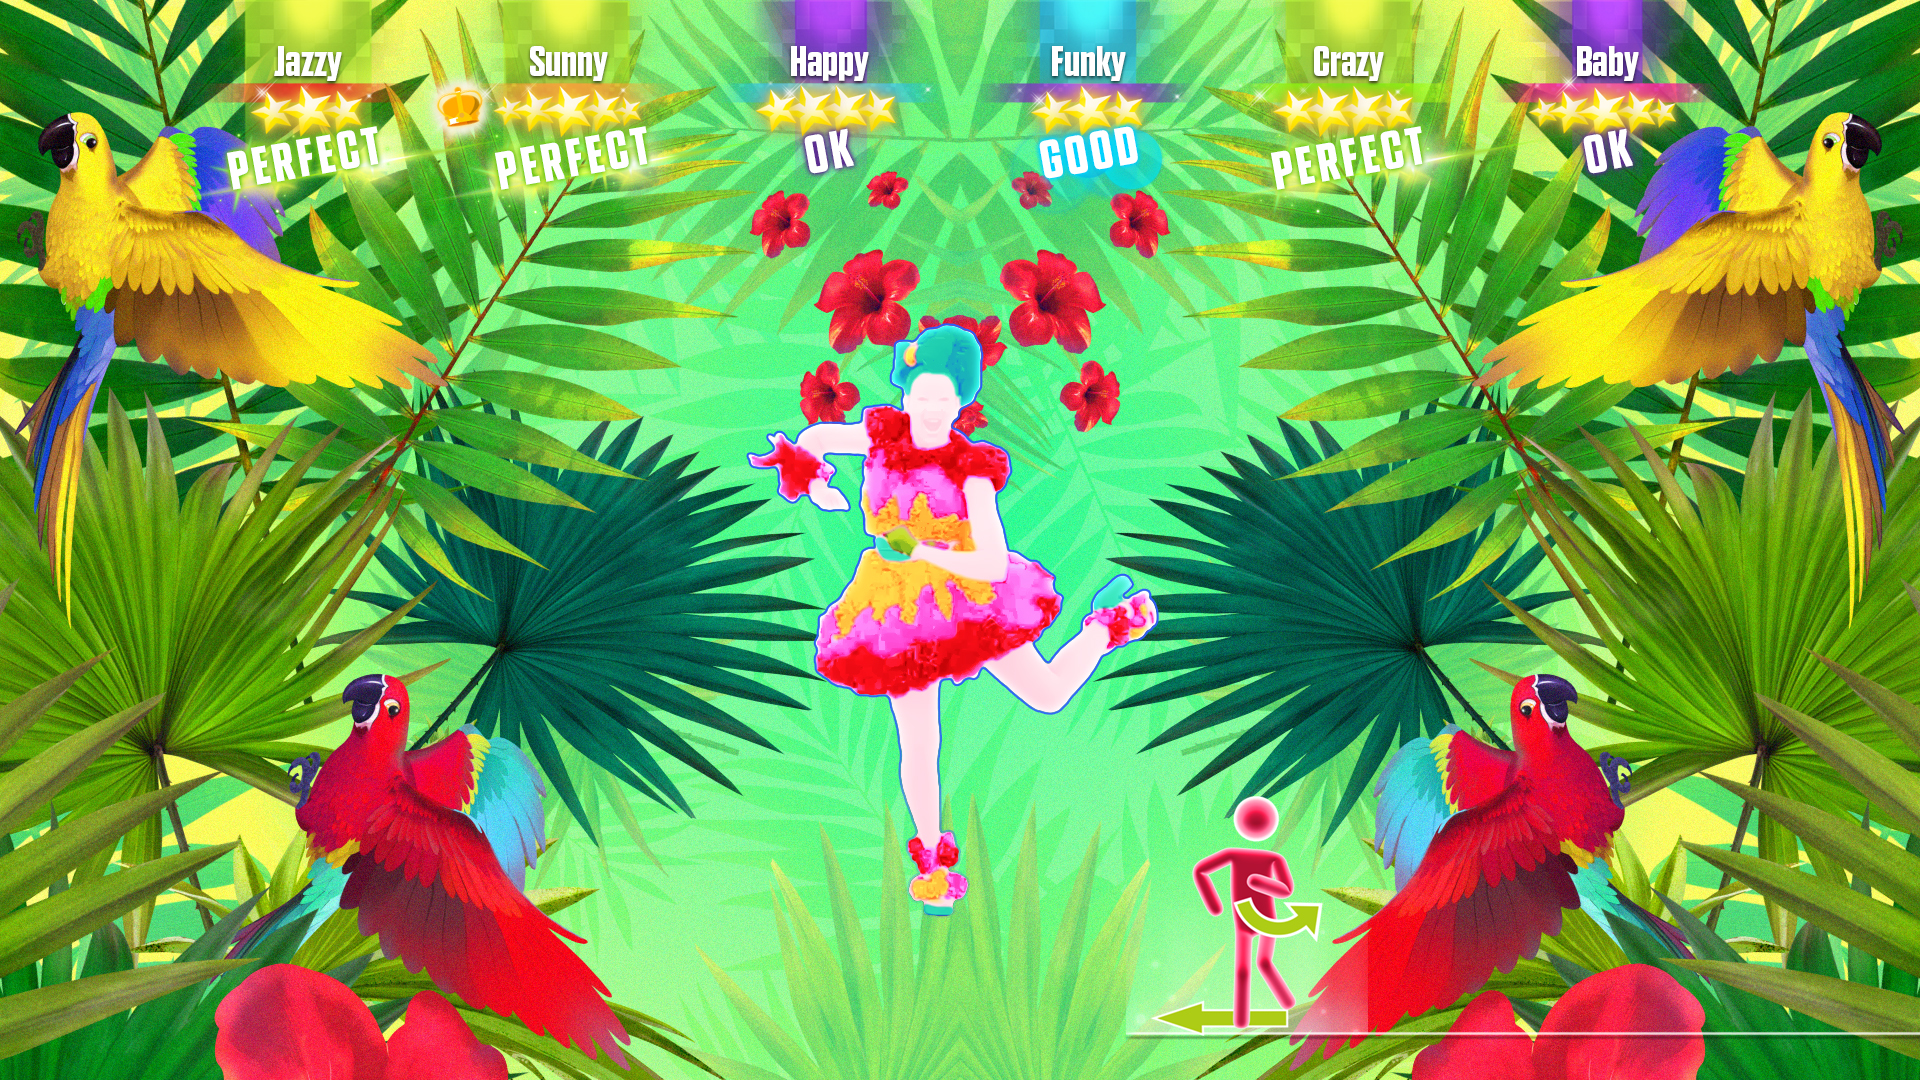 Dance some more with the latest Just Dance Unlimited content